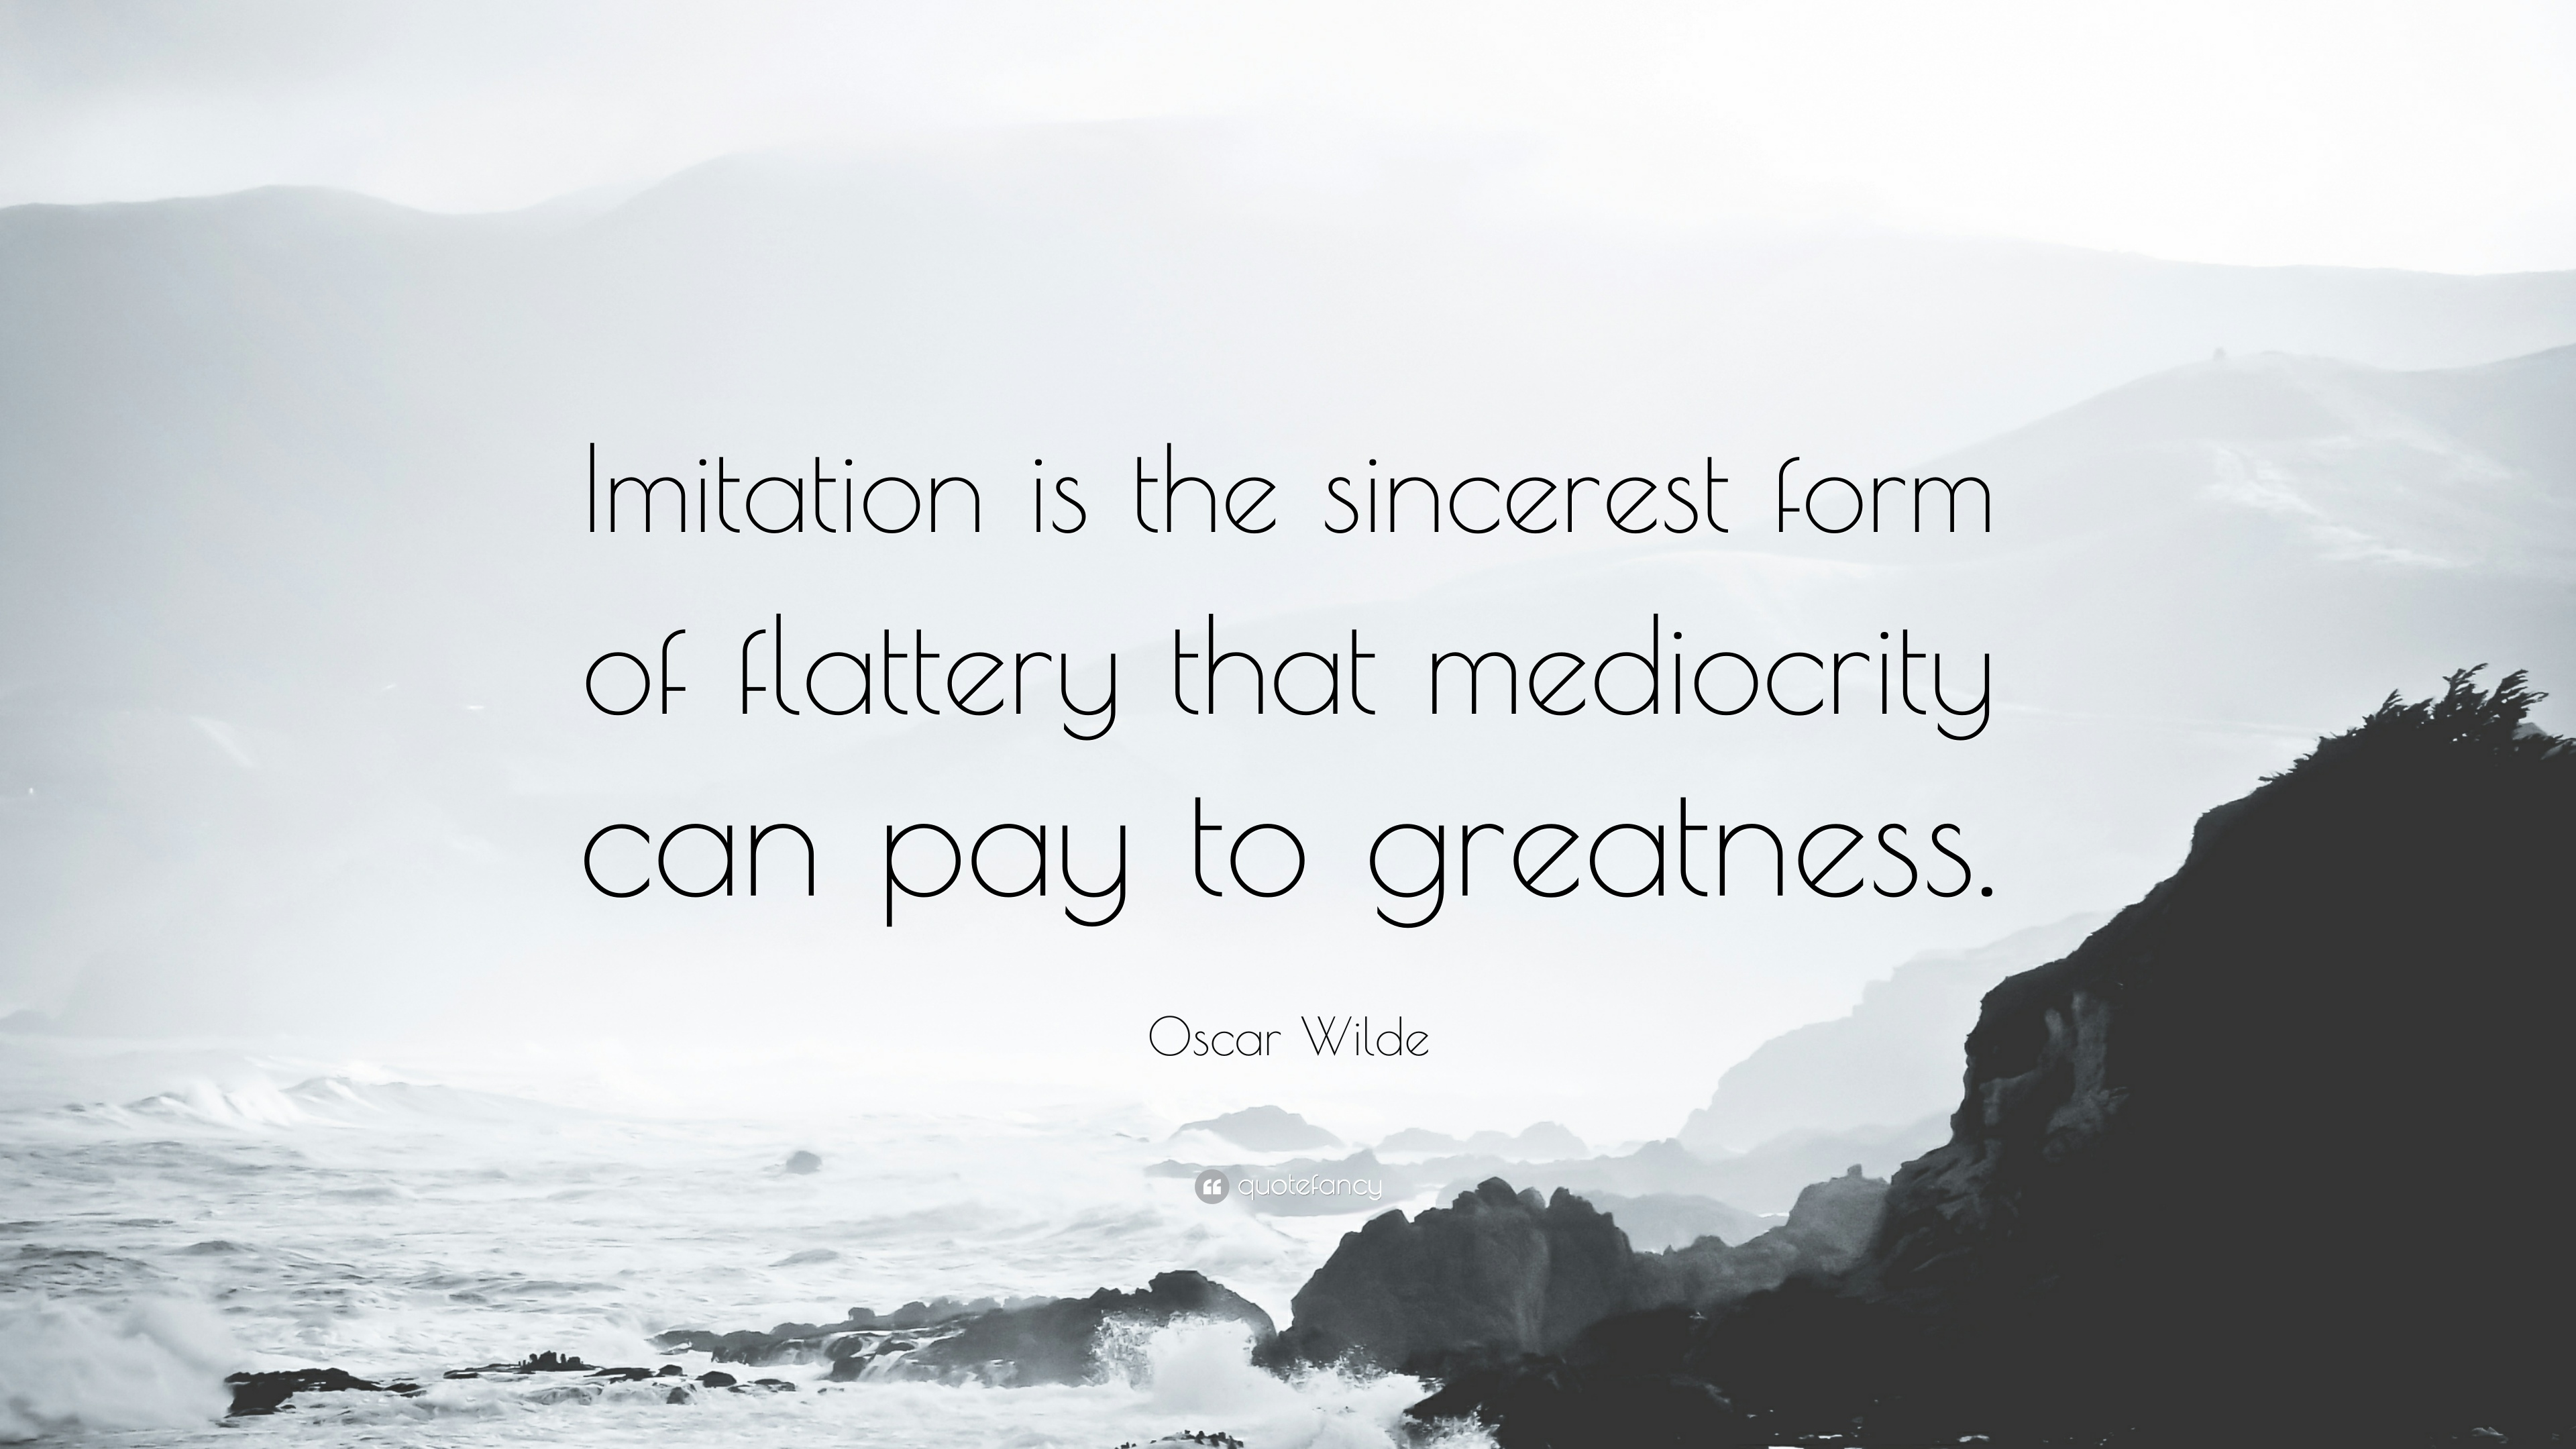 Oscar Wilde Quote: Imitation is the sincerest form of